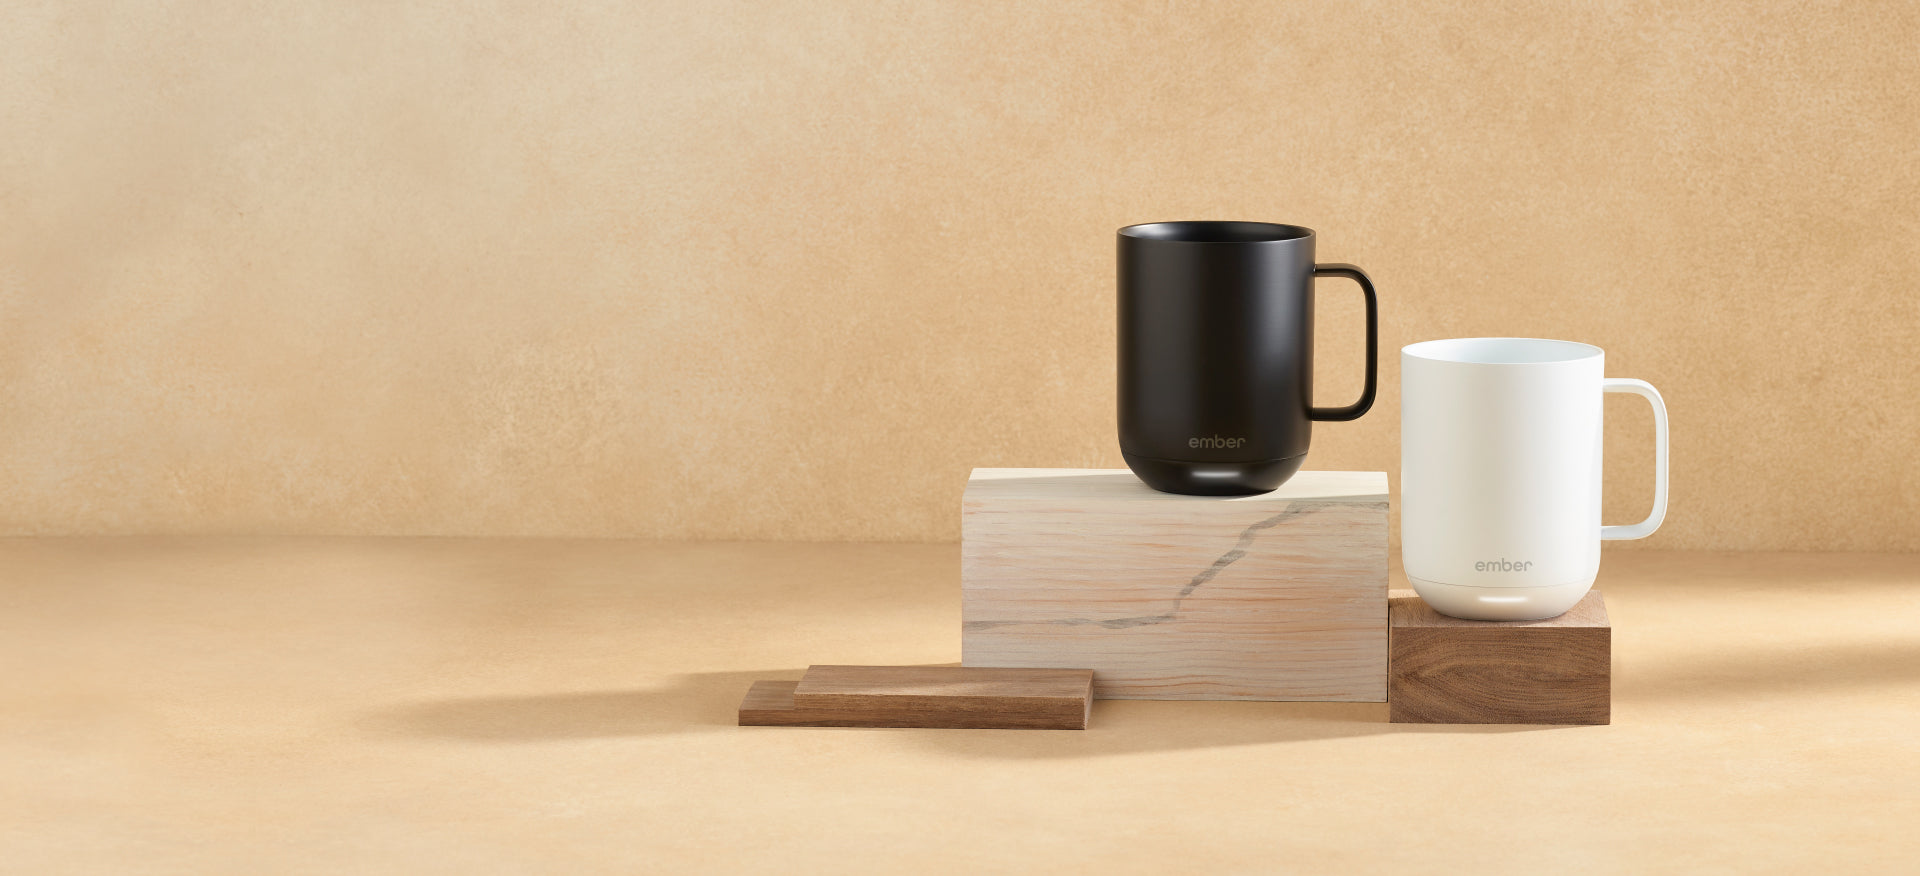 Ember The World S First Temperature Control Mug